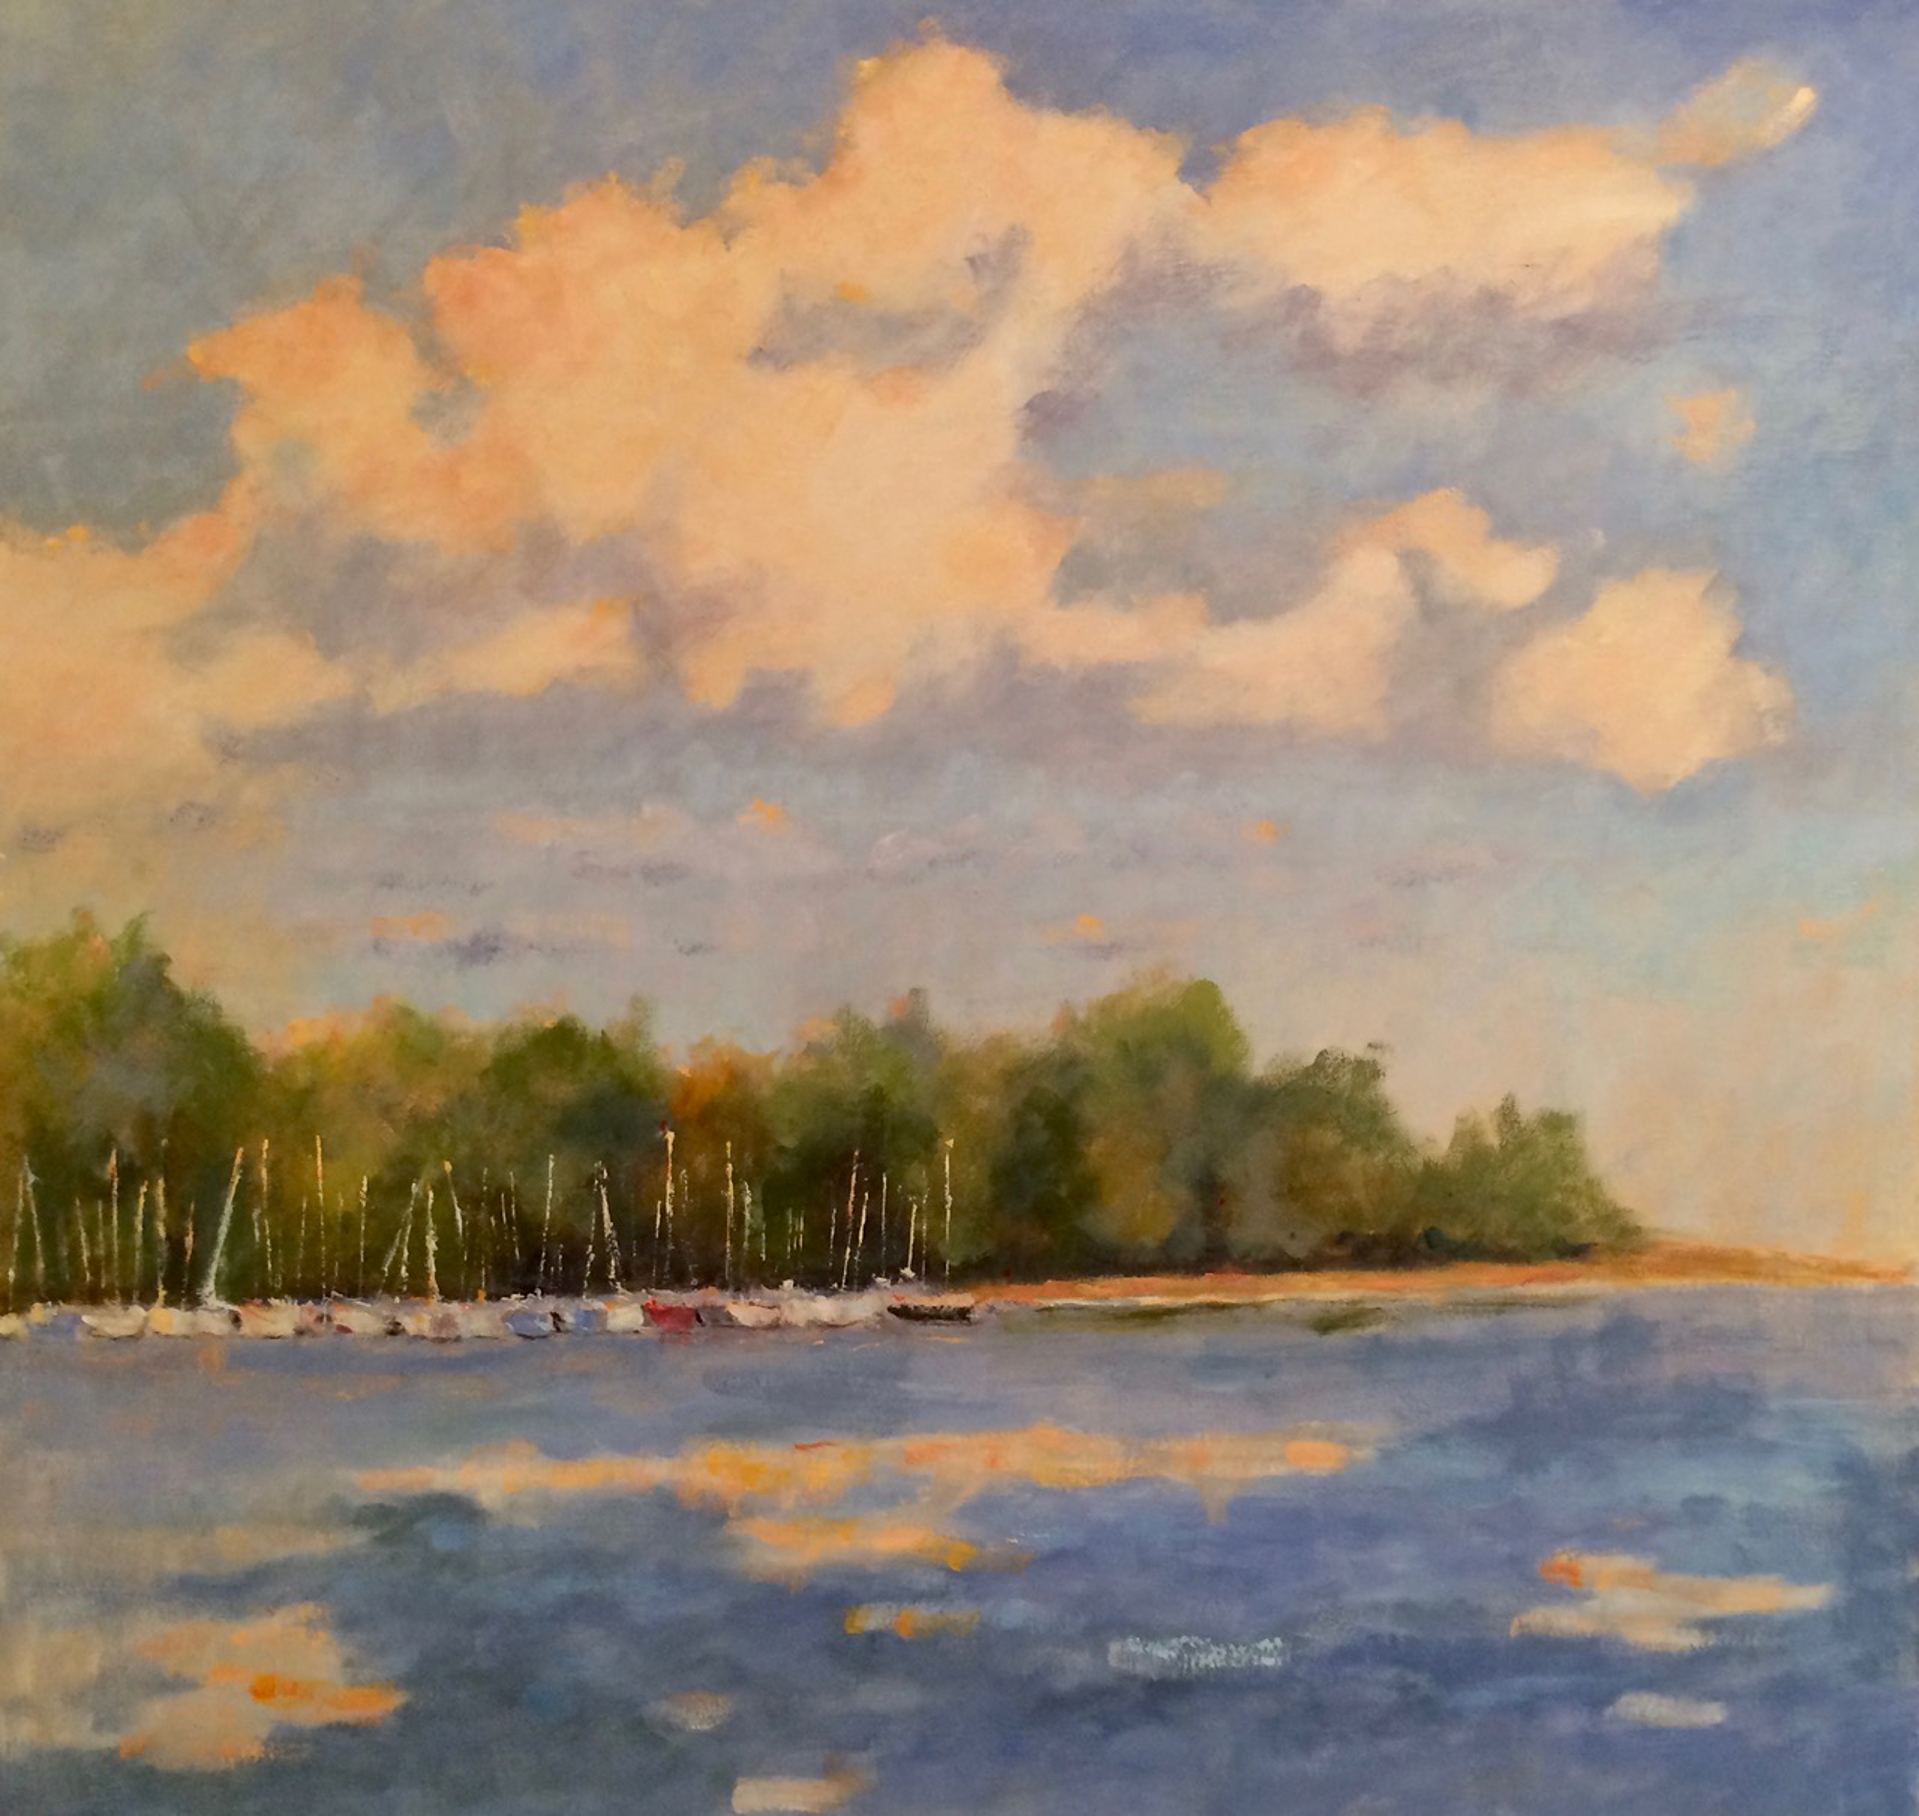 Late September Afternoon by Sharon Schwenk